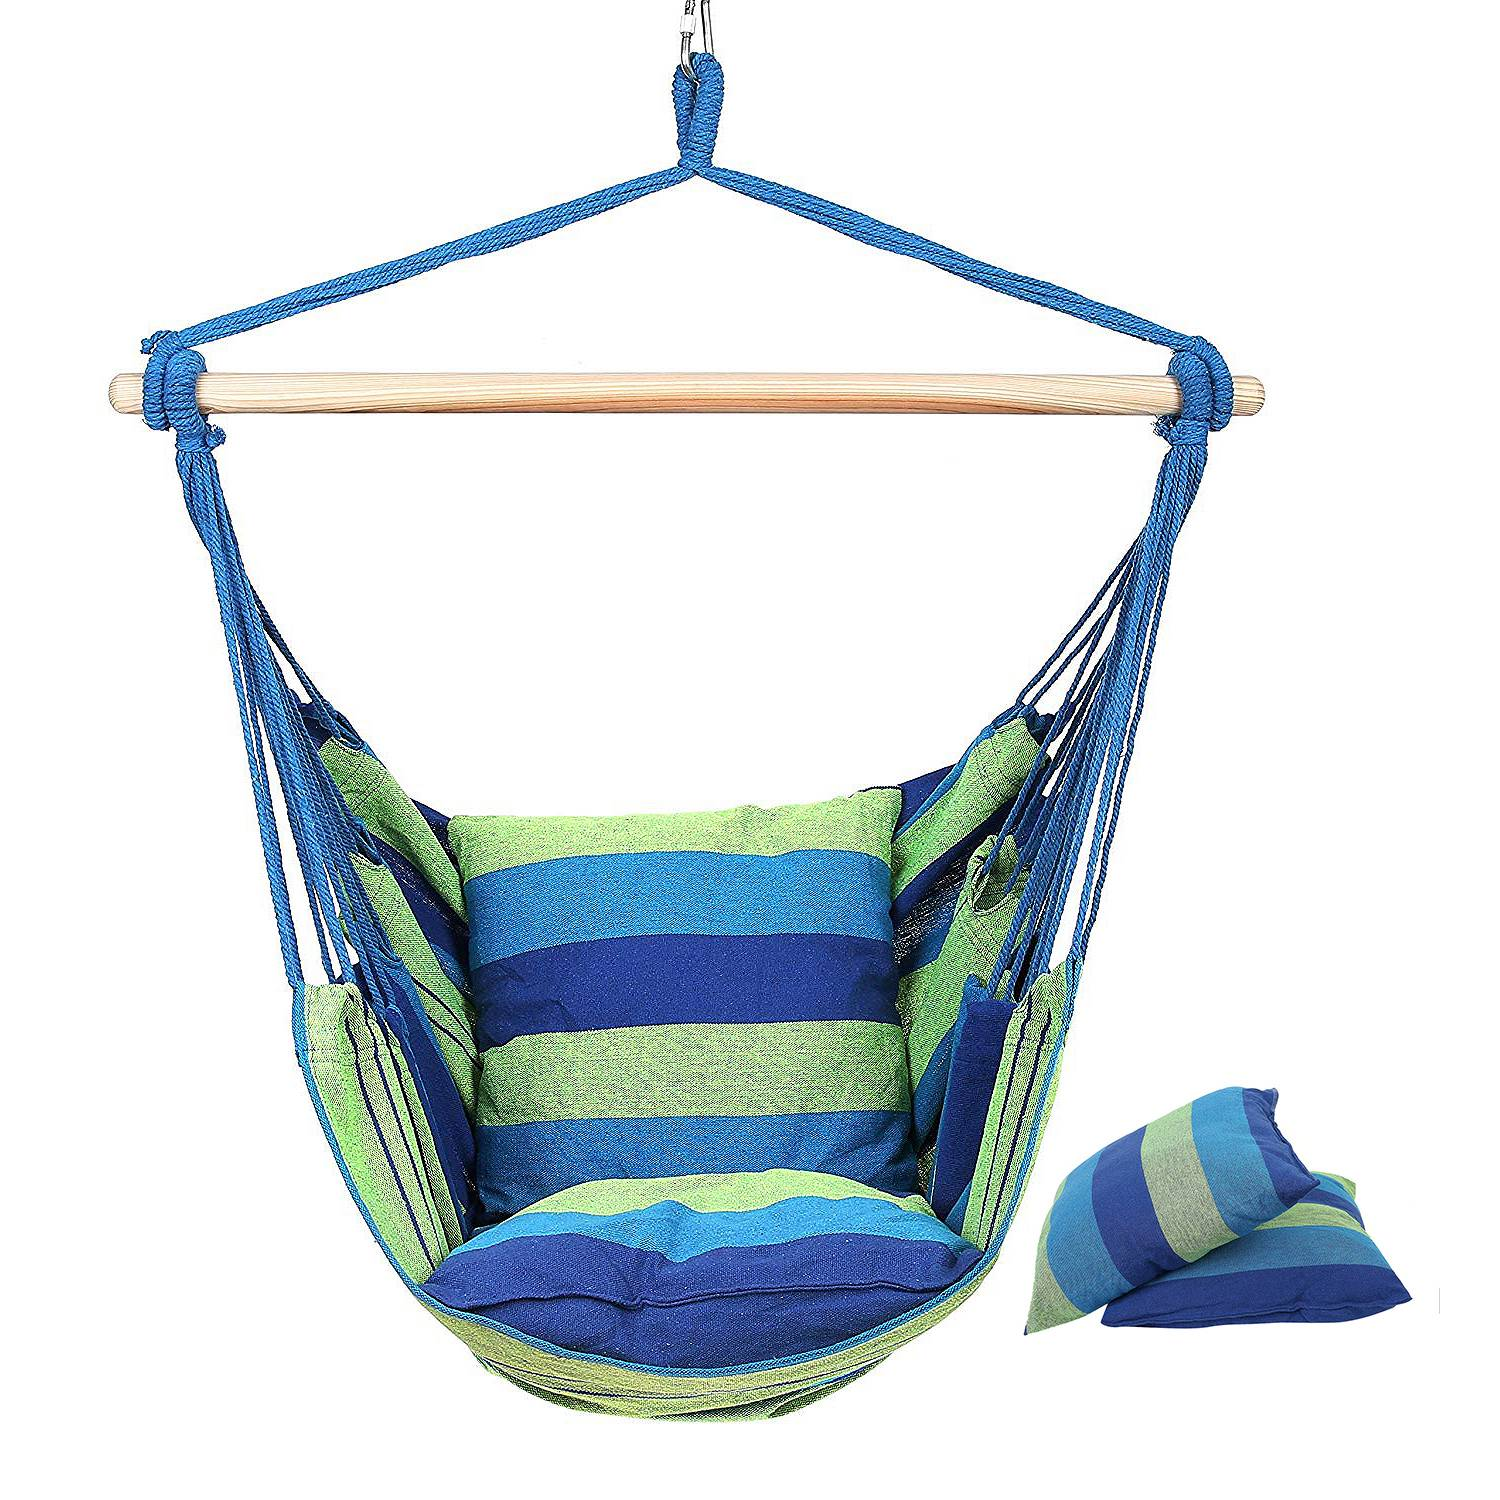 Hammock Chair Hanging Chair Swing Chair Seat With 2 Pillows For Indoor Outdoor Garden Blue